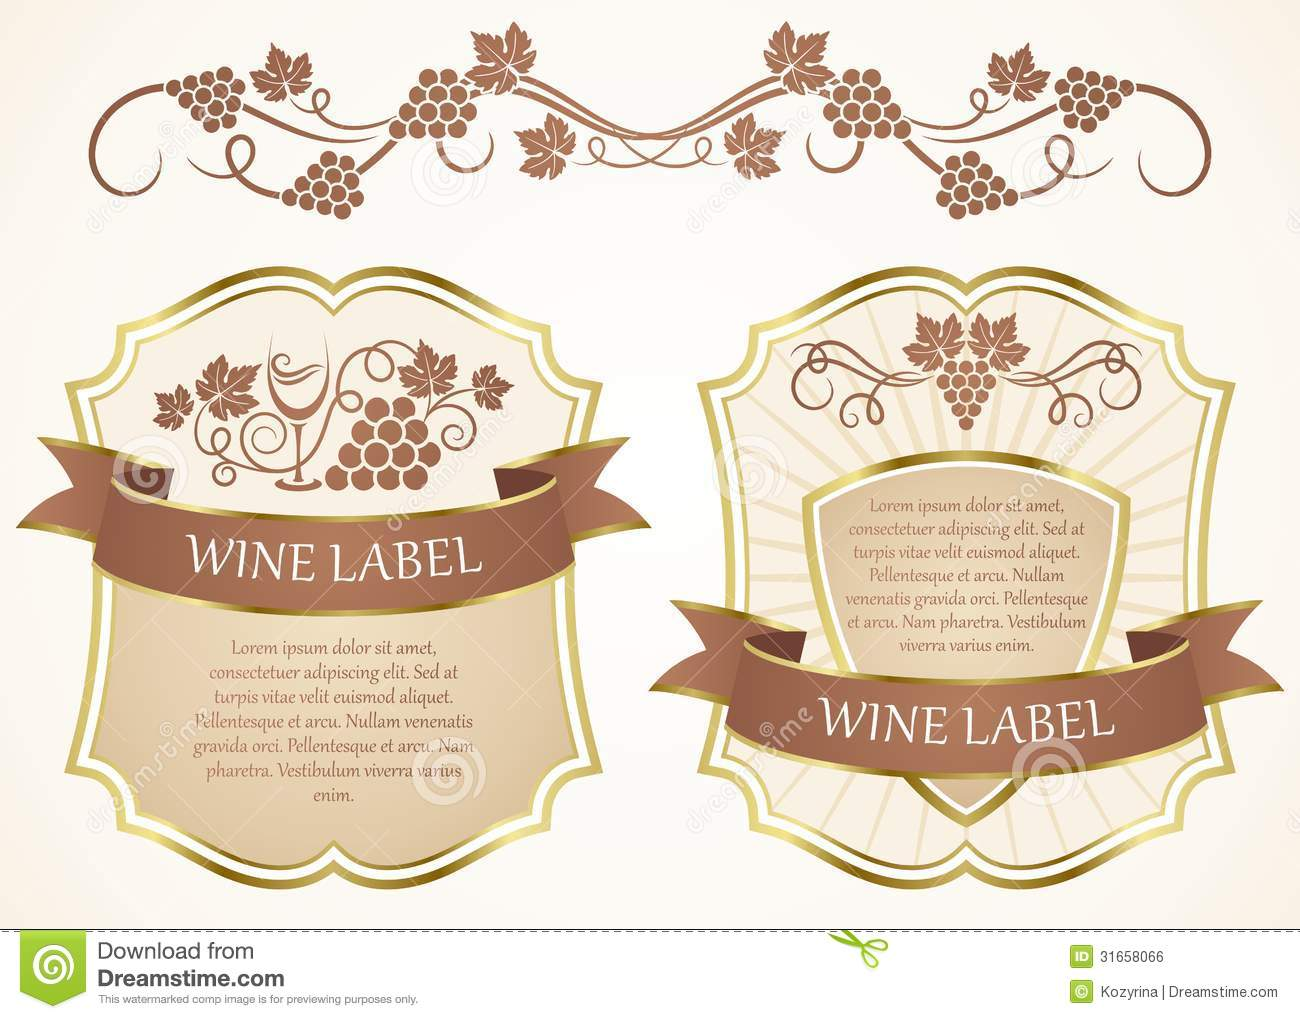 wine label stock vector illustration of alcohol background 31658066. Black Bedroom Furniture Sets. Home Design Ideas